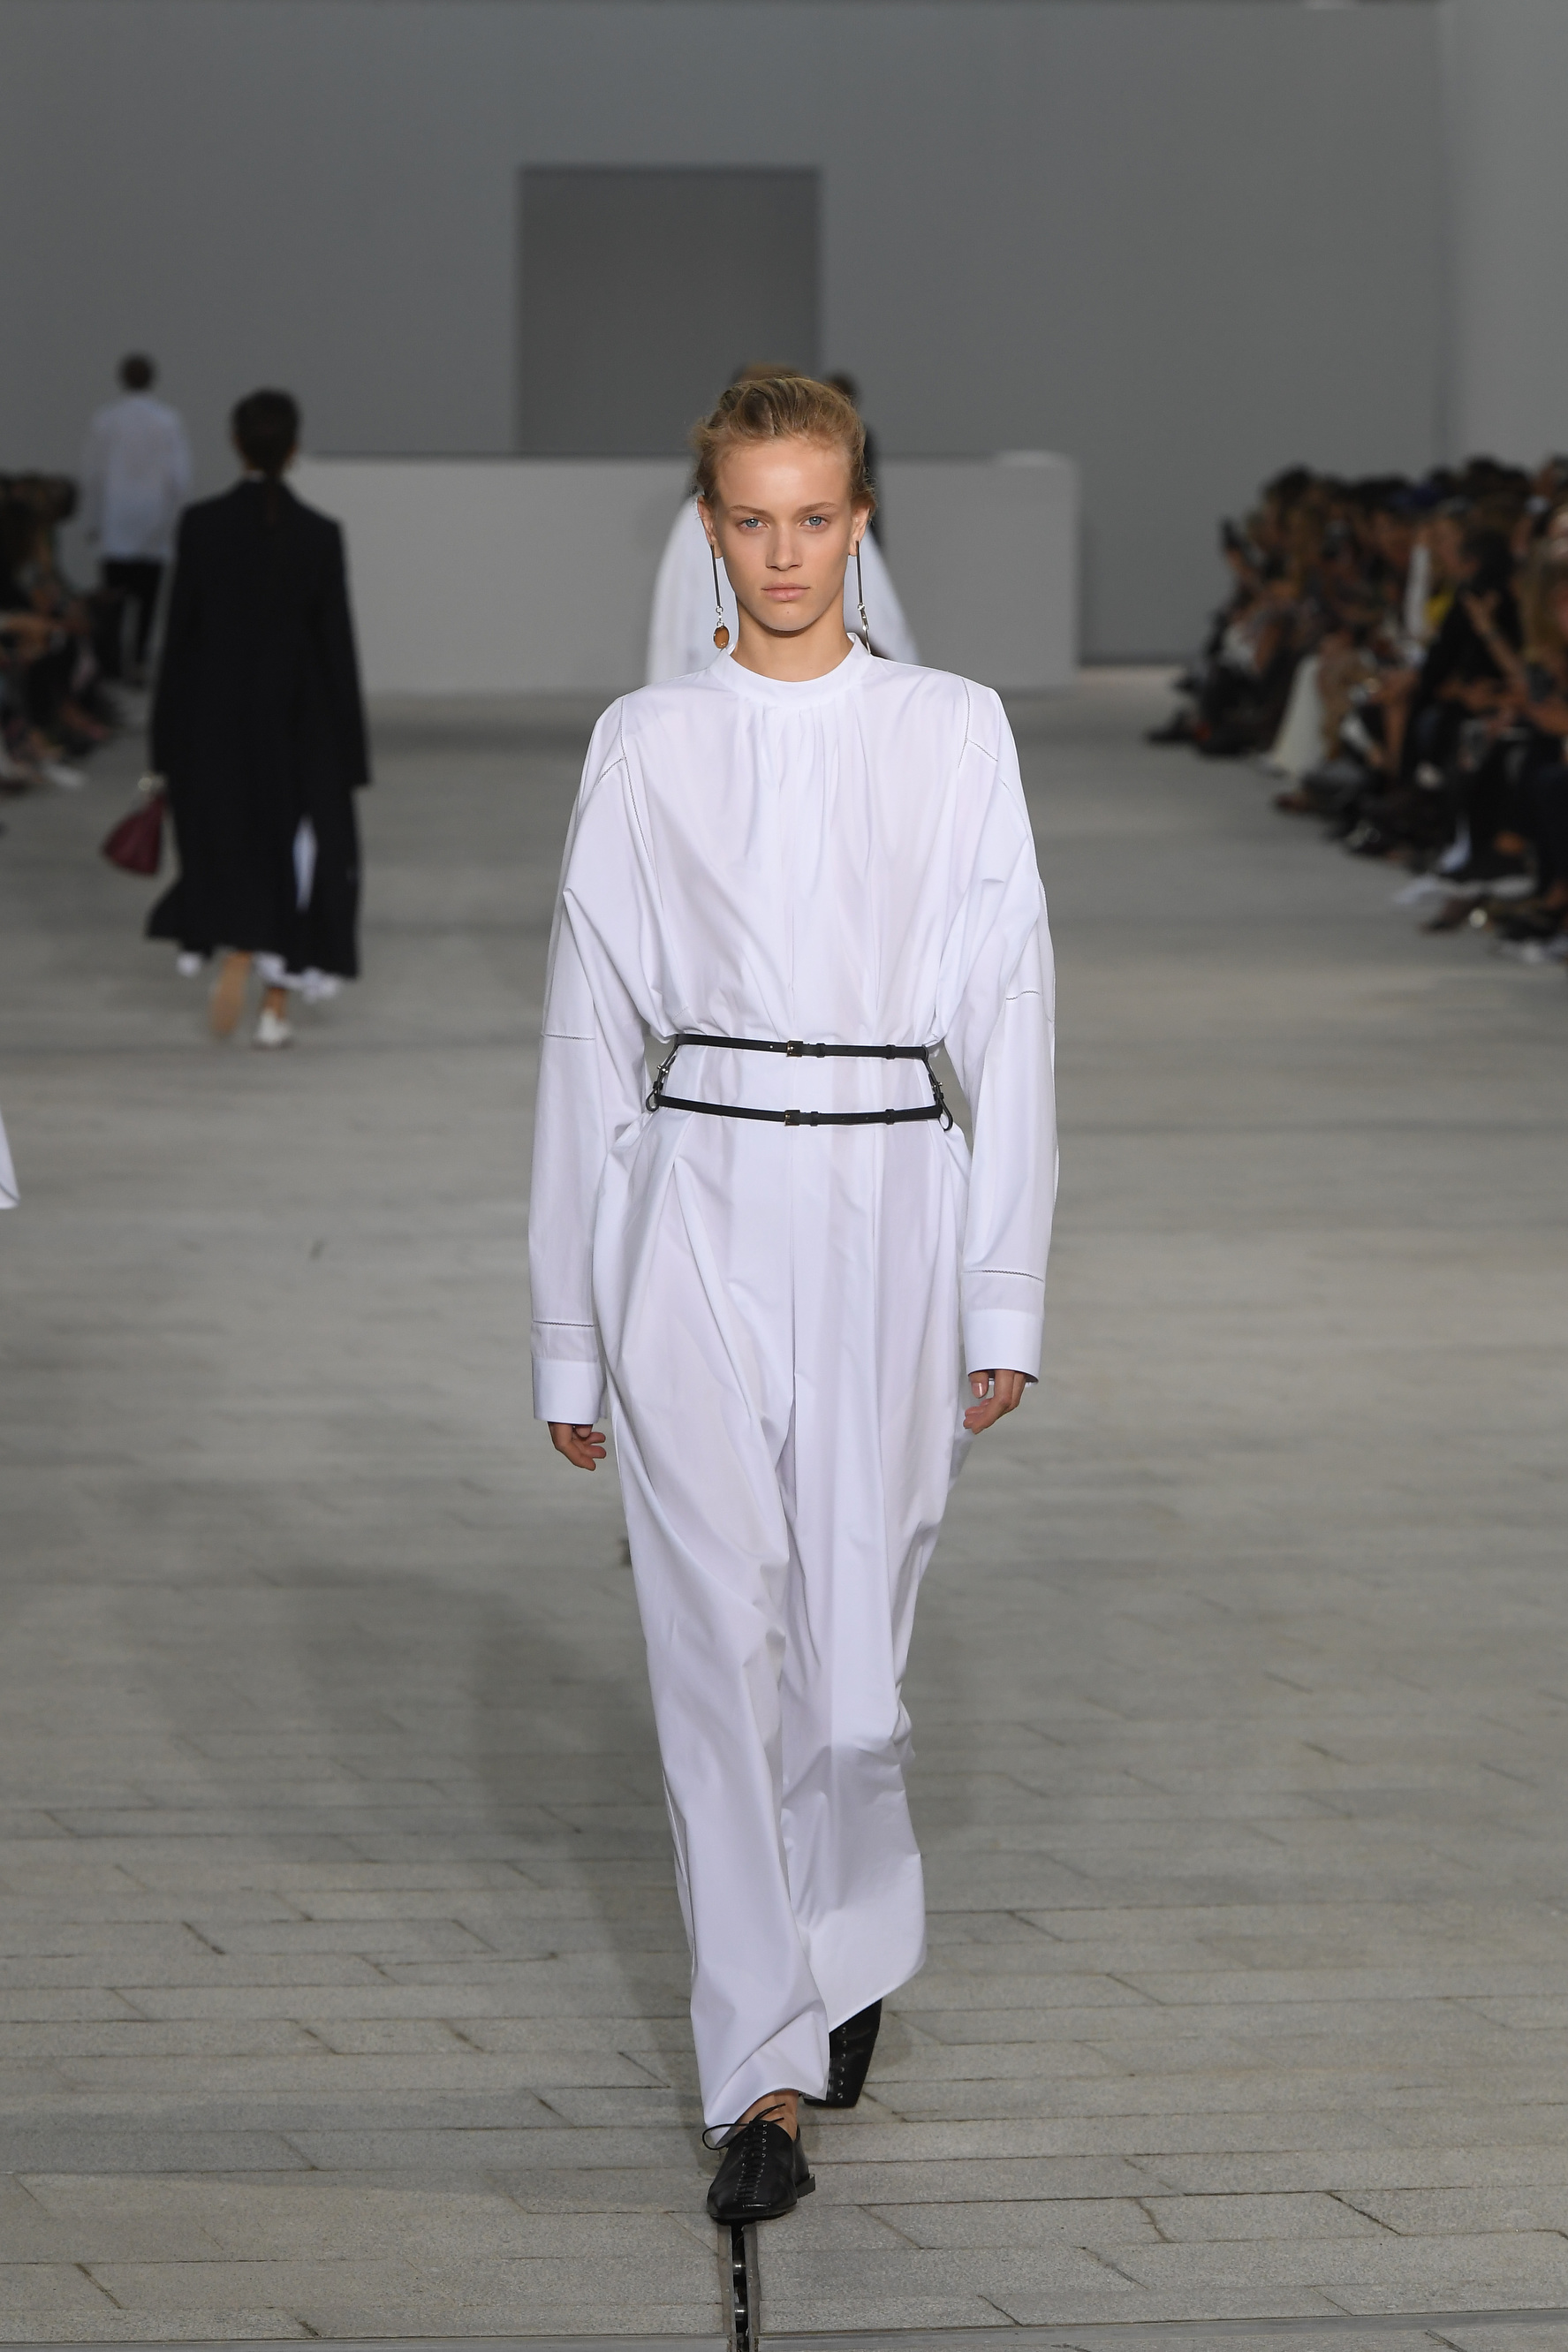 ON THE CONCEPT OF SIMPLICITY BY LUCIE AND LUKE MEIER'S DEBUT FOR JIL SANDER SPRING/SUMMER 2018